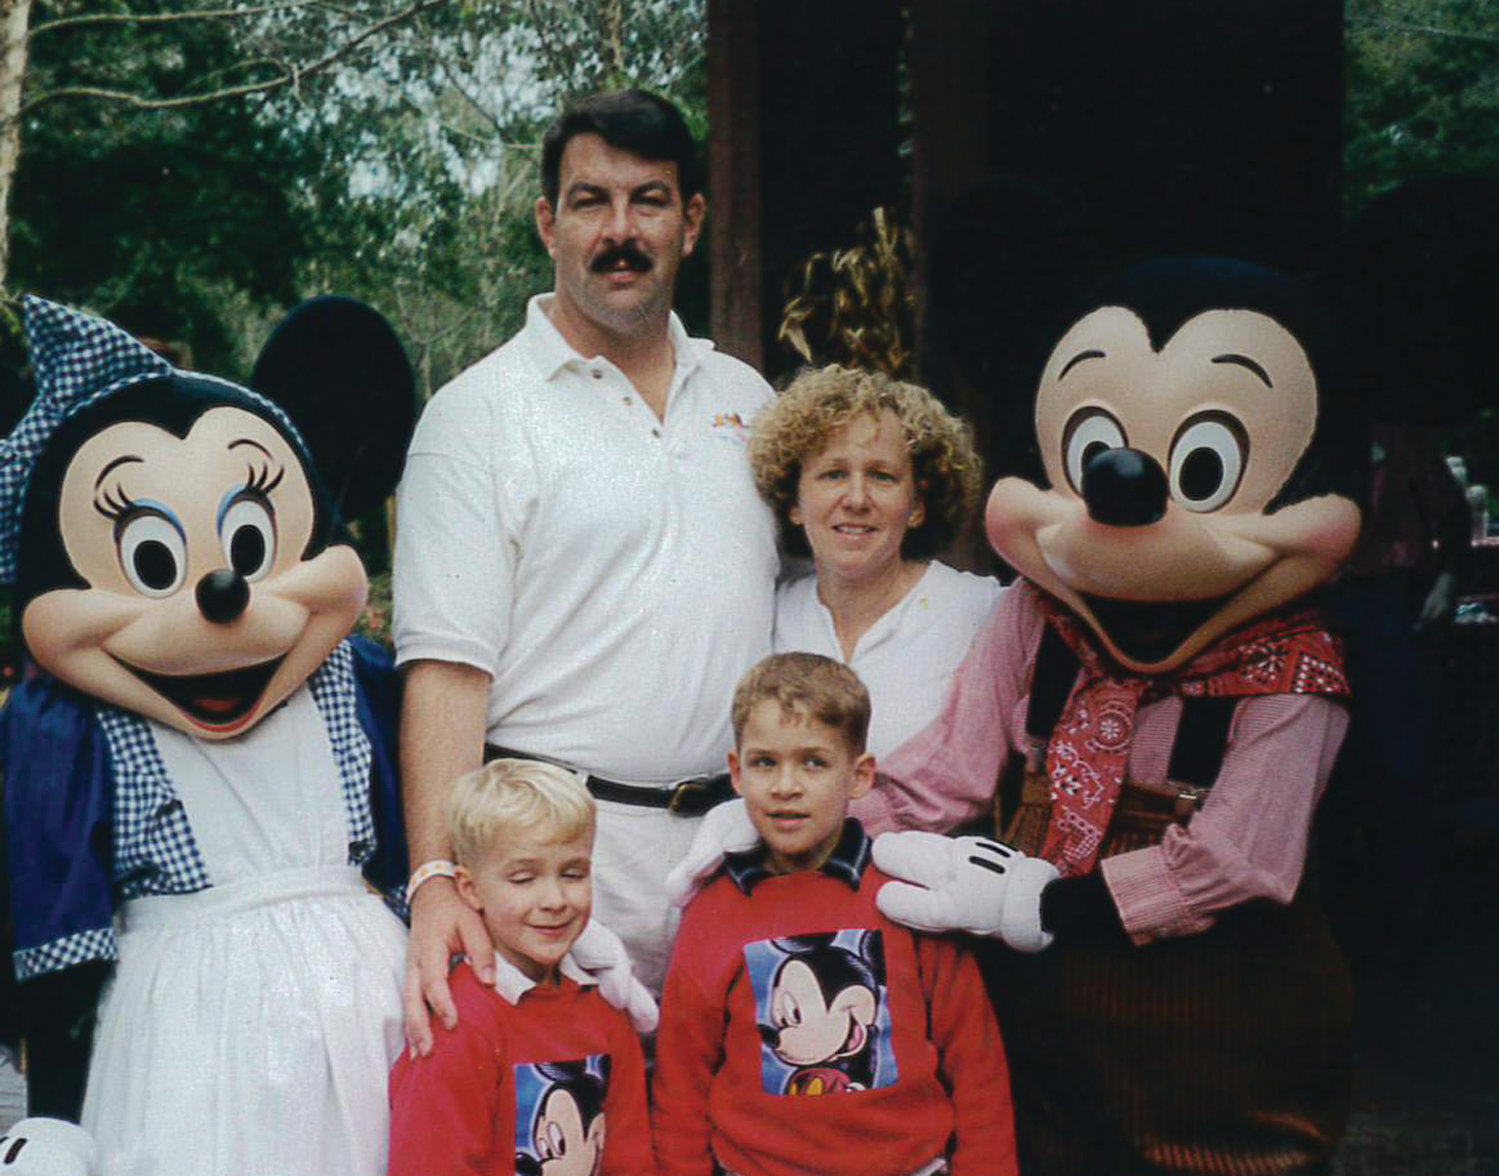 BONDED BY LOVE: Vince, Nancy, Nick and Ben Haight gather together during a family trip to Disney World in this photo provided by Nancy. The family has advocated for greater funding for childhood cancer research.